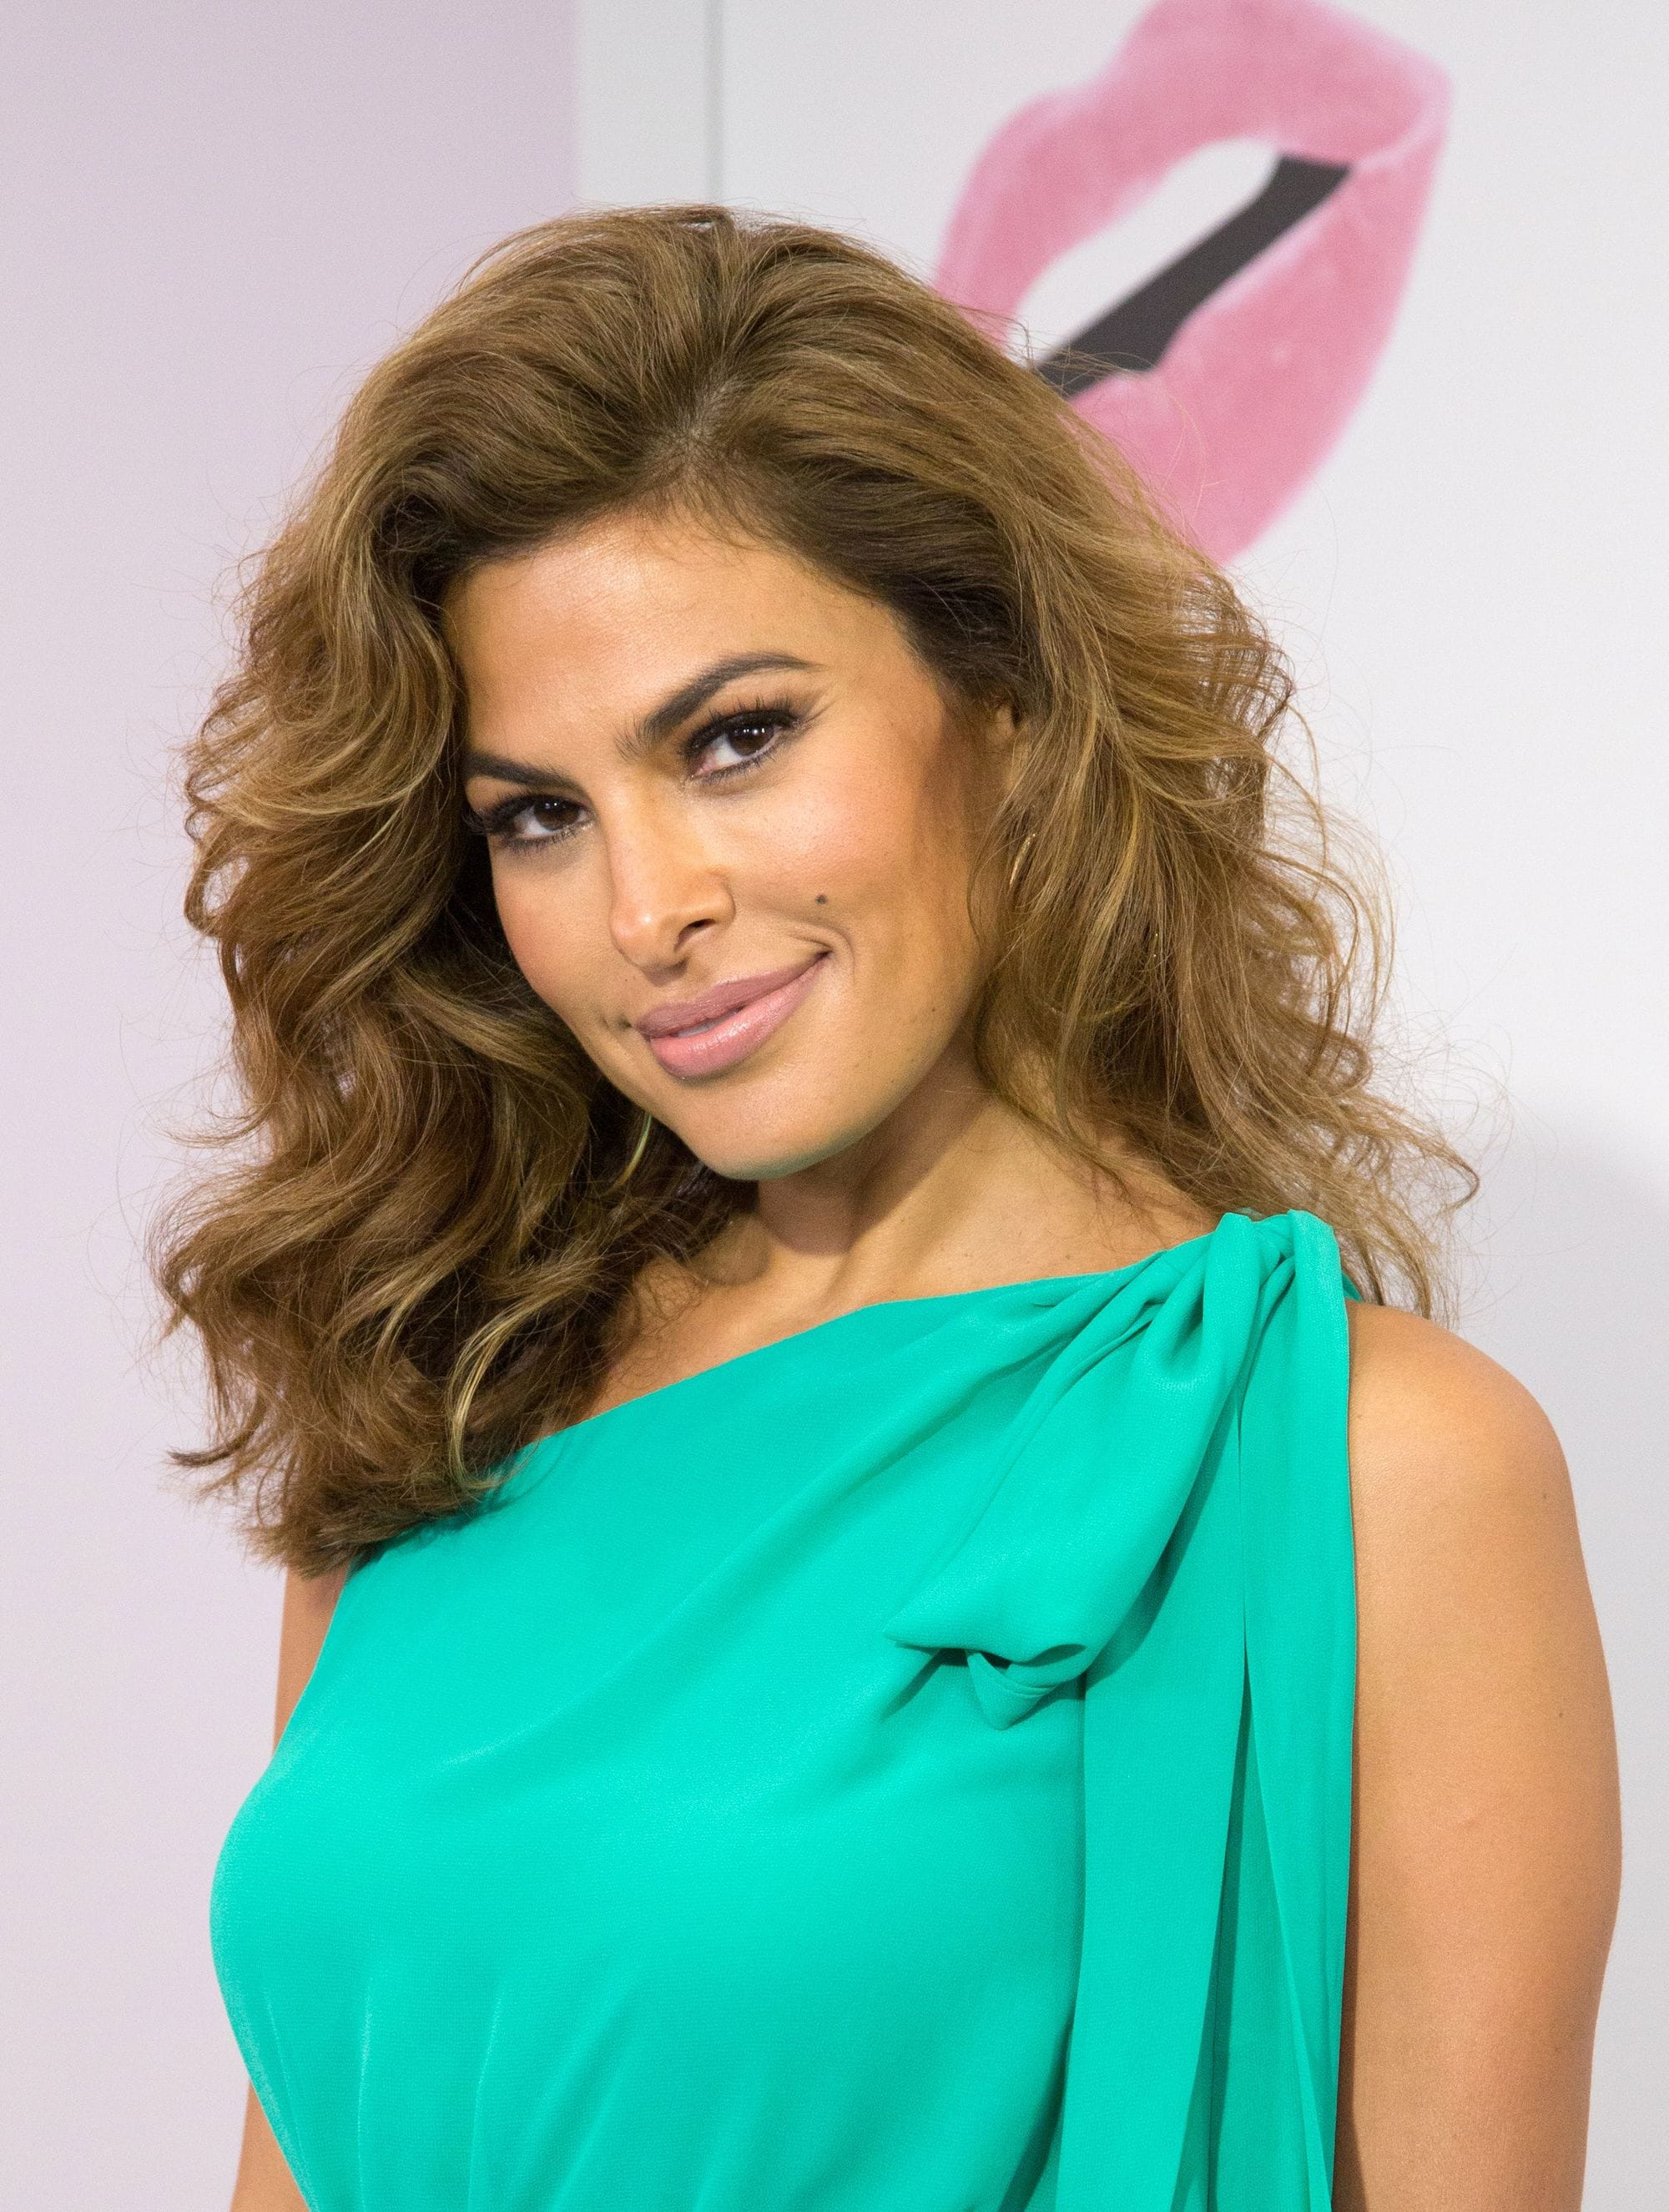 Eva Mendes with medium-length textured caramel waves, wearing green on the red carpet and posing